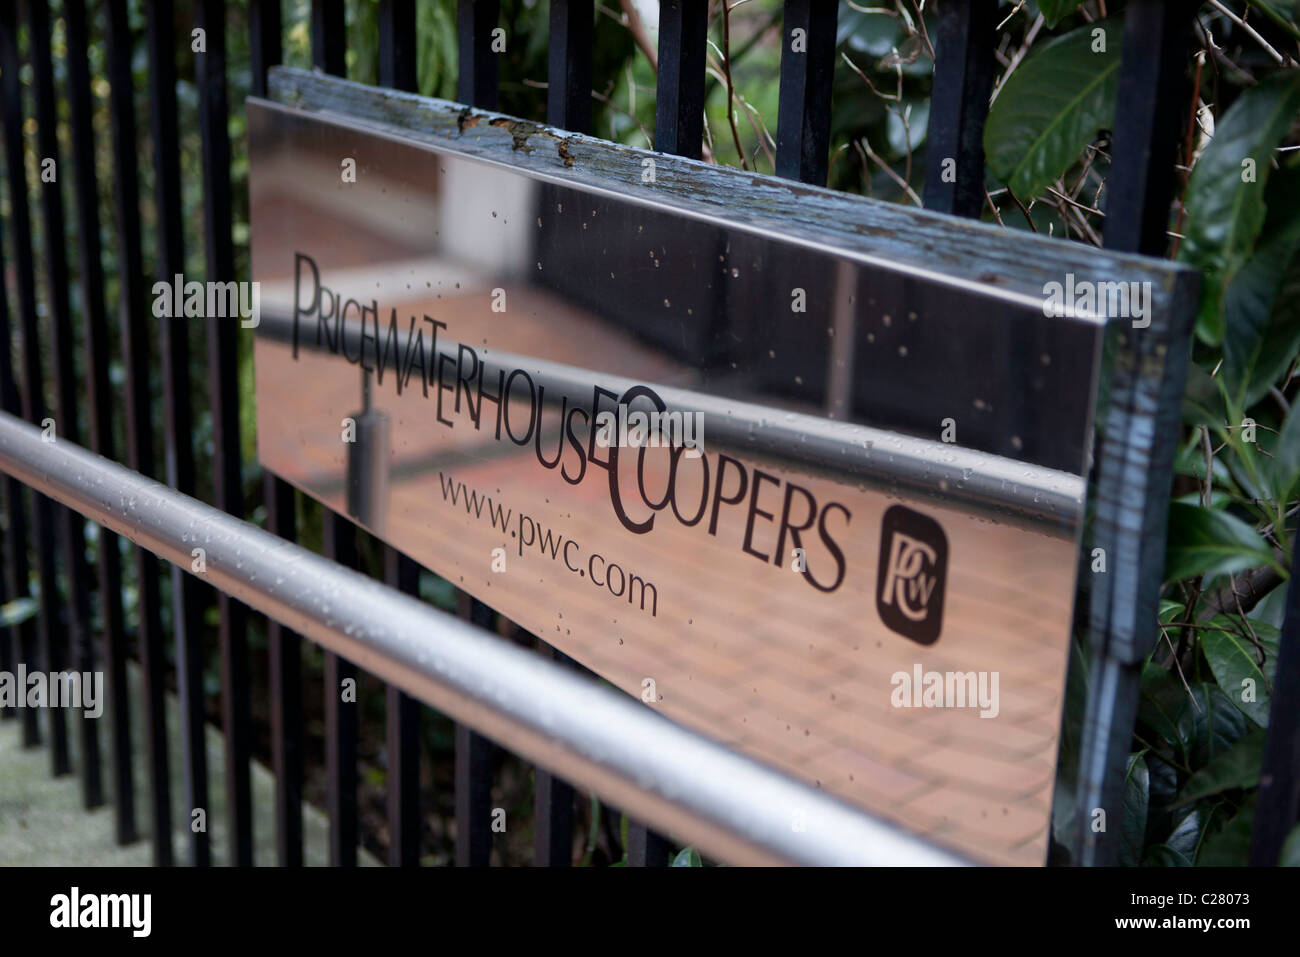 The sign to Price Waterhouse Coopers PWC. - Stock Image